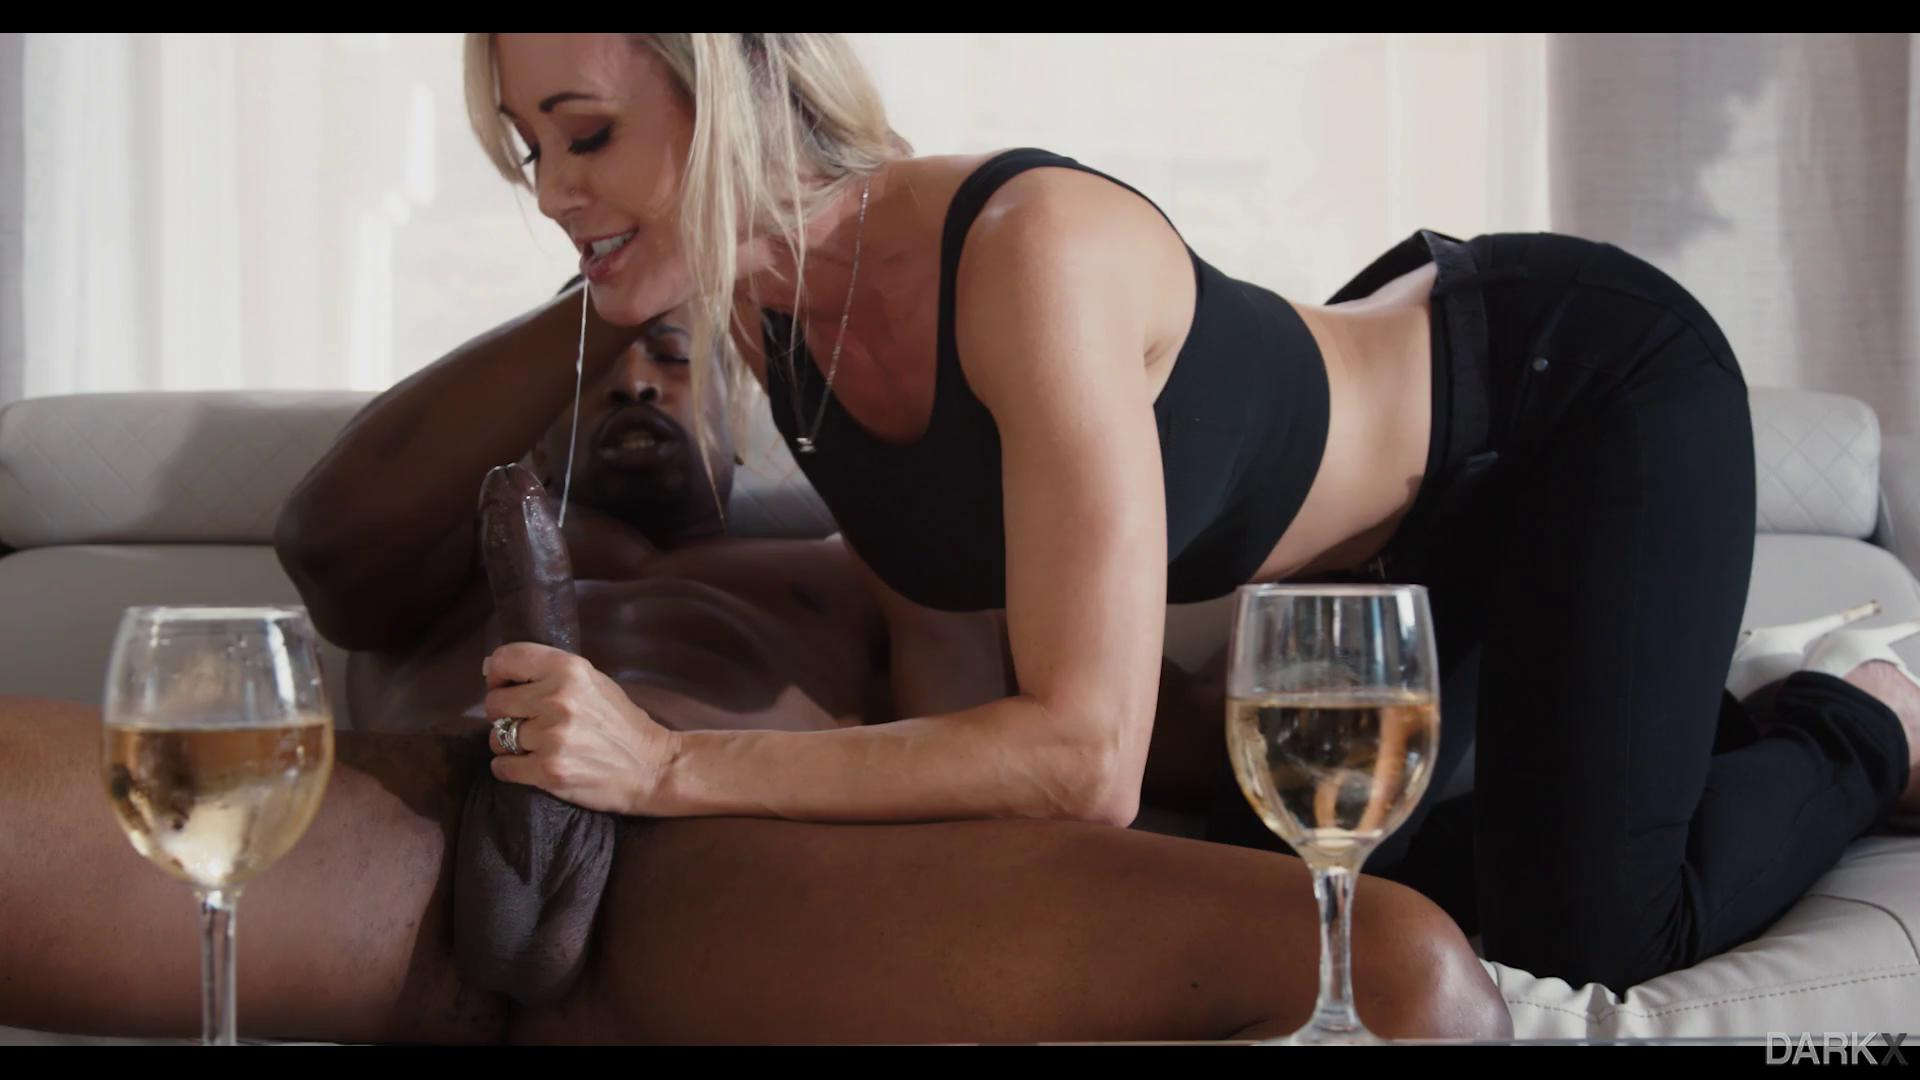 DarkX – Brandi Love My Noisy Neighbor